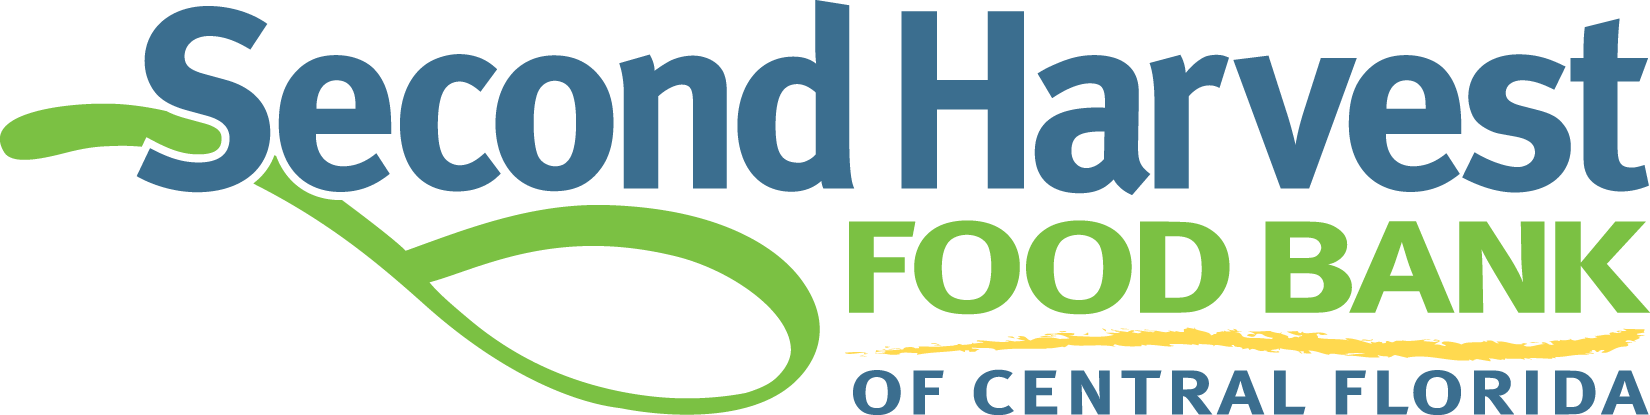 https://wellbeingforum.guidewellinnovation.com/wp-content/uploads/2019/06/Second-Harvest-Logo-with-transparent-background.png